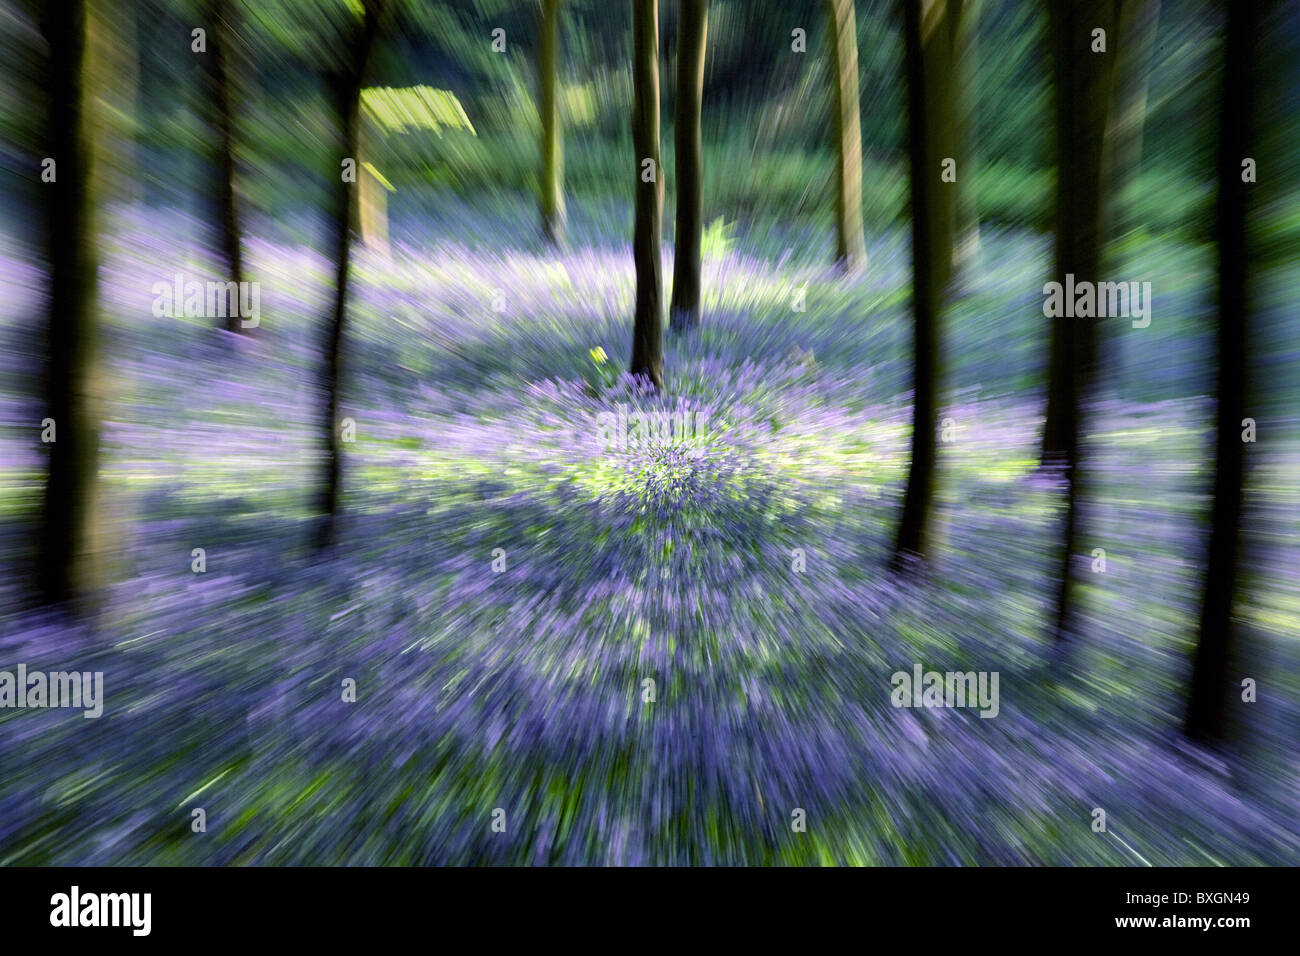 Zoom shot of a Somerset bluebell wood - Stock Image